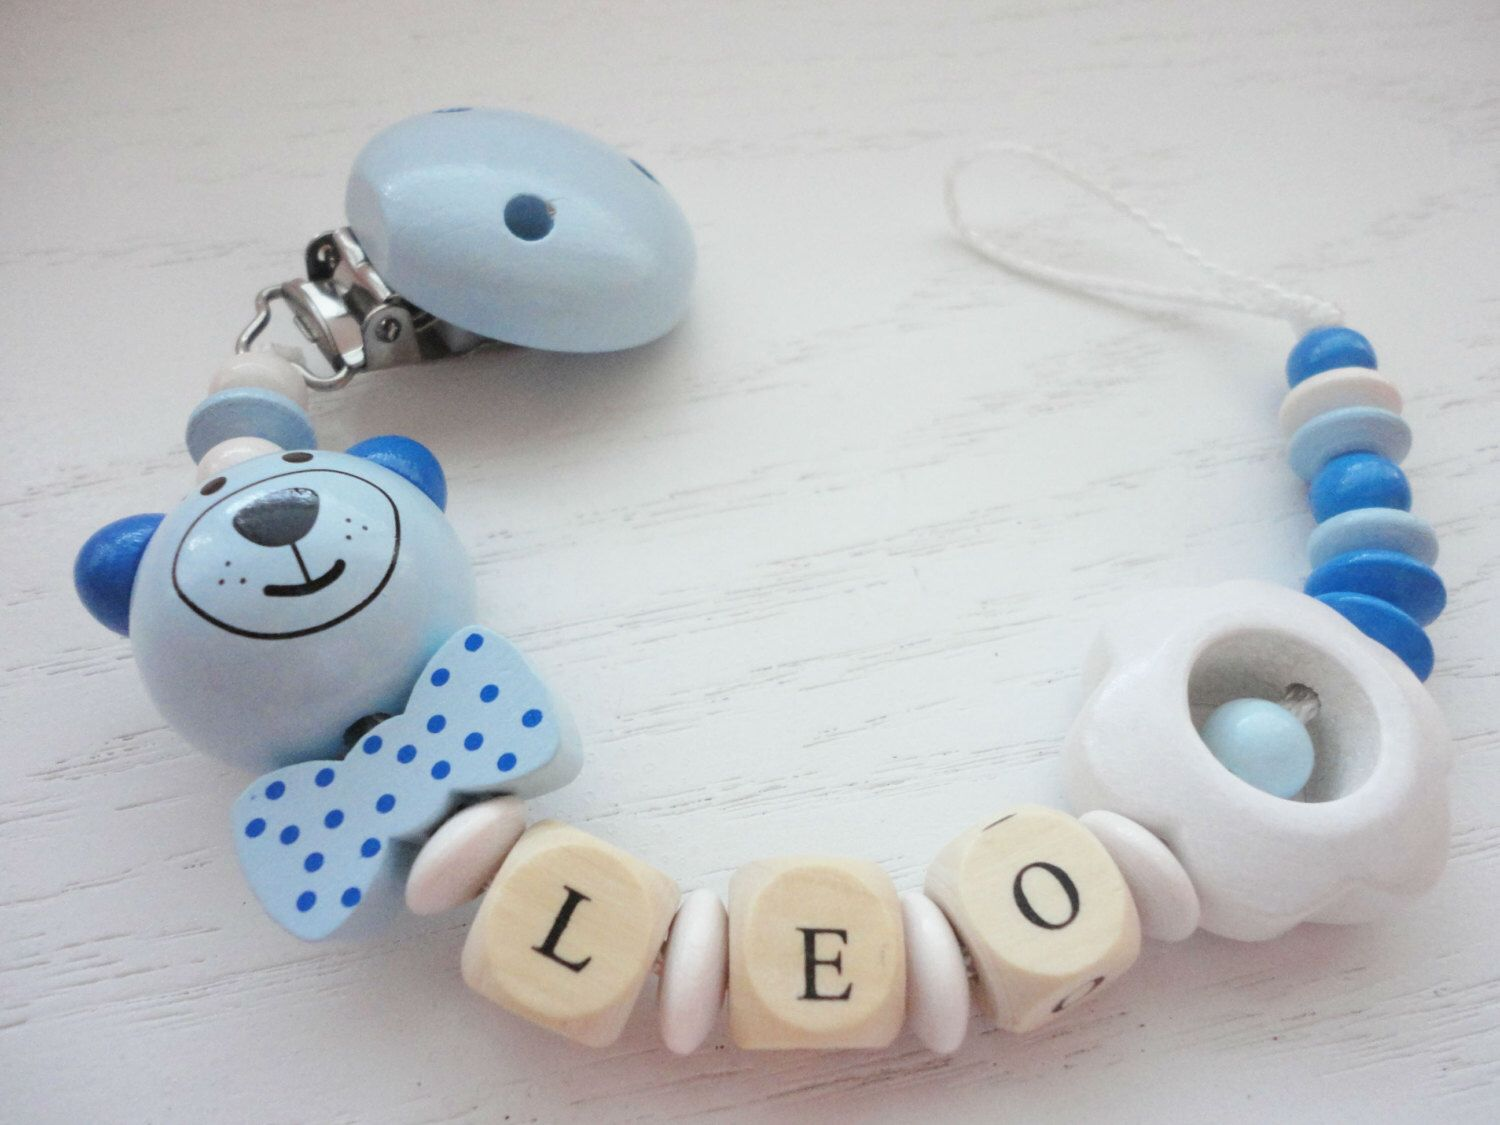 Personalized baby boy gift baby shower gift boy pacifier clip personalized baby boy gift baby shower gift boy pacifier clip unique baby gift negle Image collections